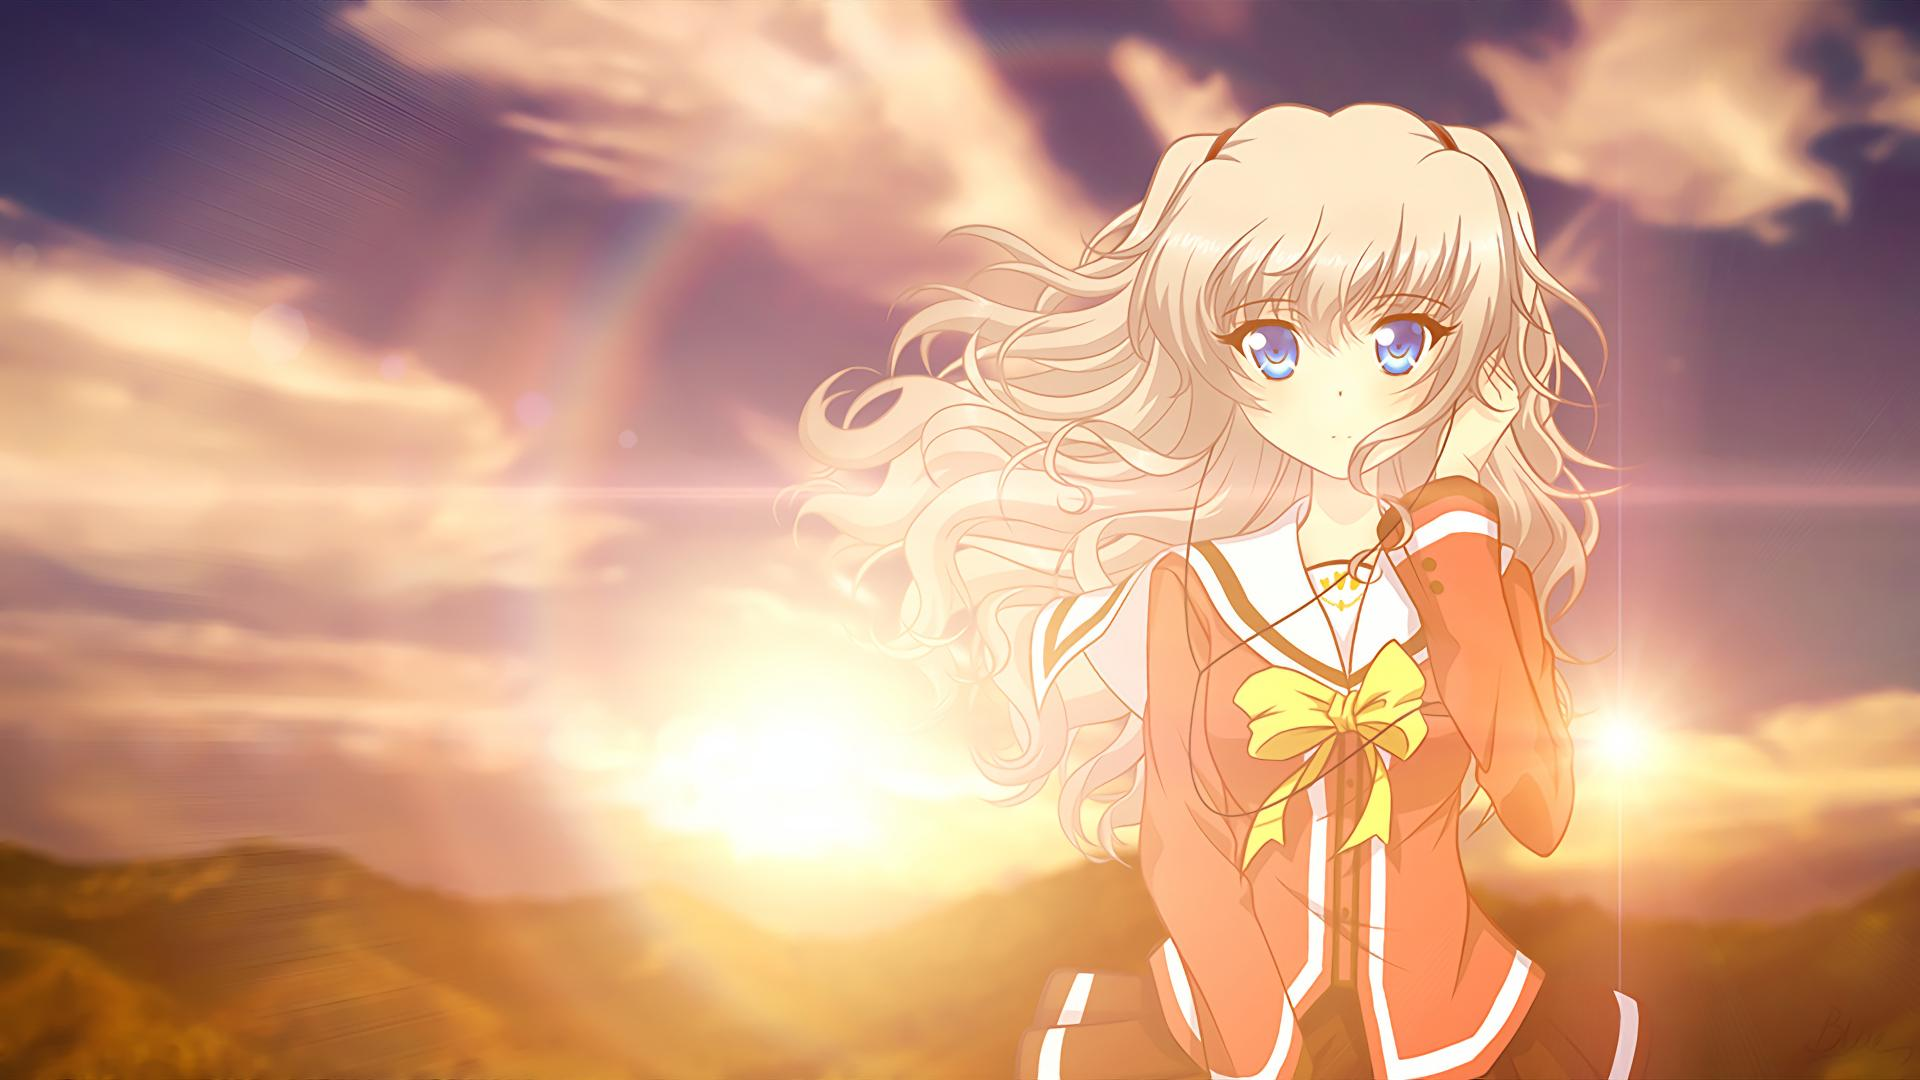 Anime   Charlotte Nao Tomori Charlotte (Anime) Anime Wallpaper